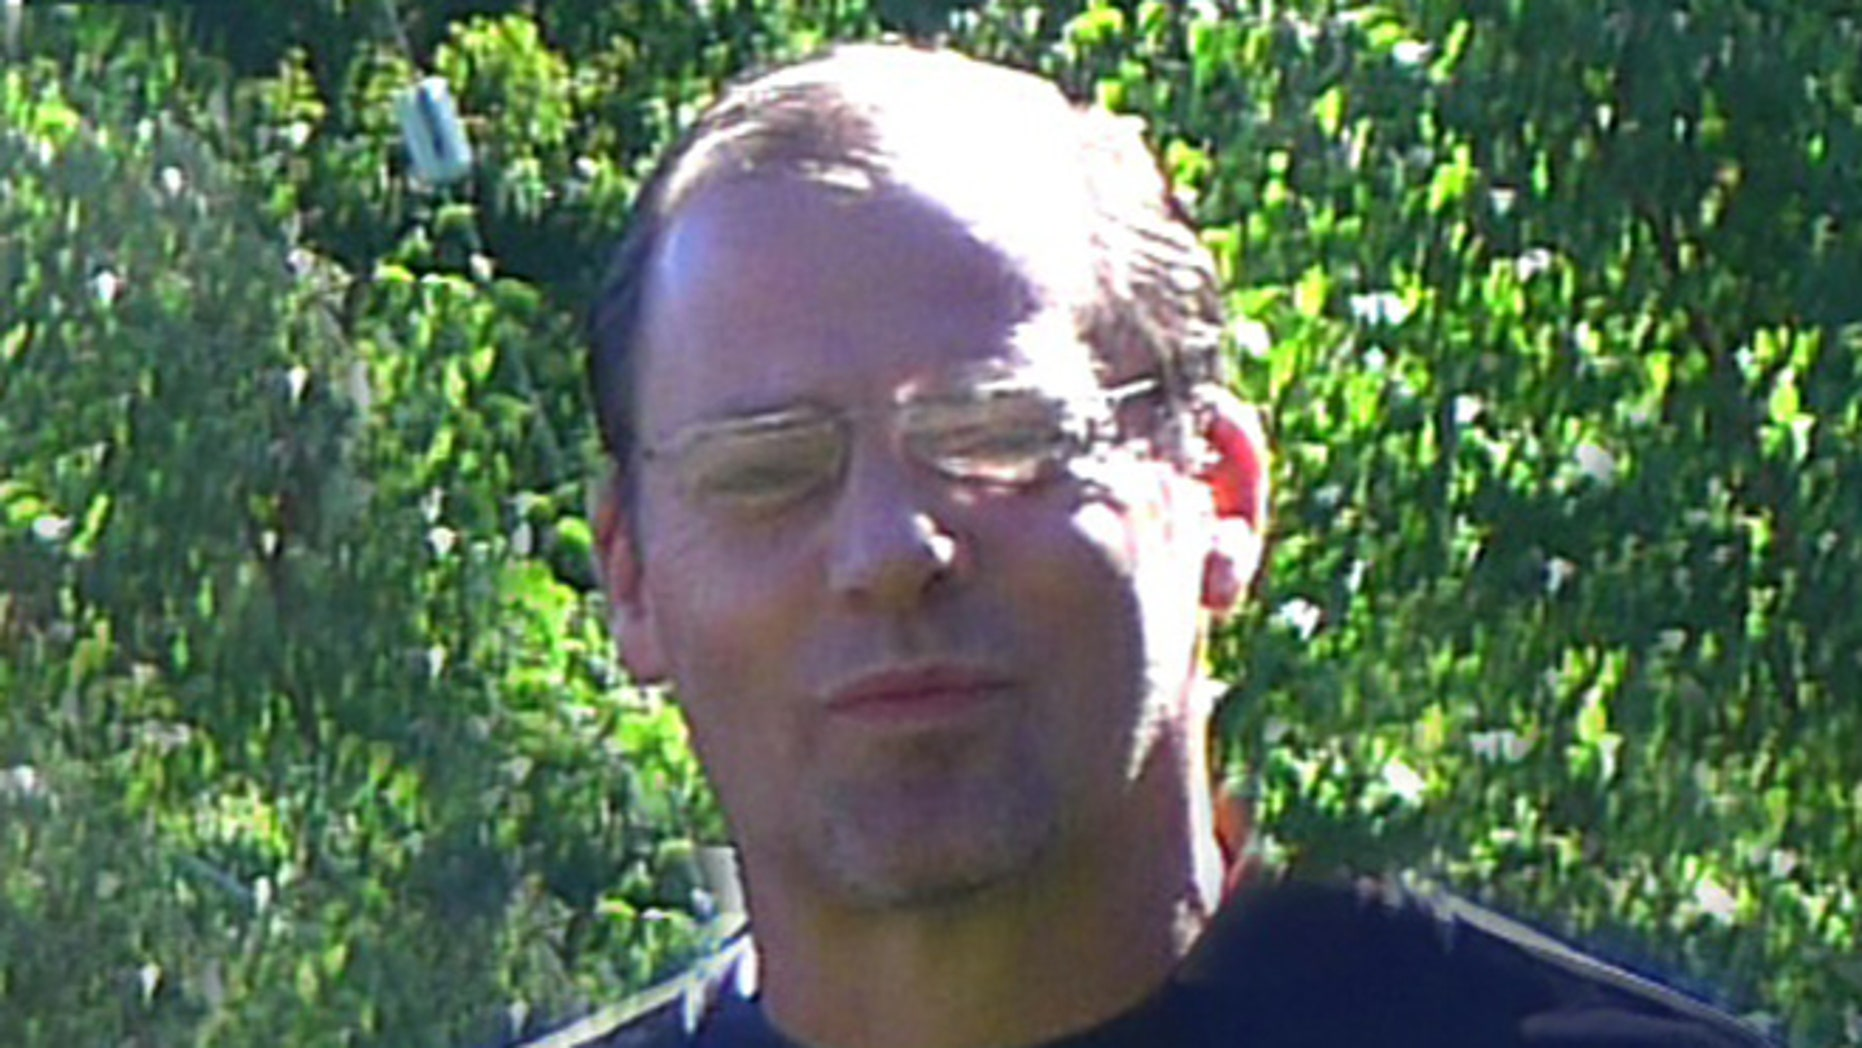 Richard Becher, 50, was struck while on the mound during batting practice at Baseball Heaven in Yaphank on Saturday. He was later pronounced dead at a local hospital. (Courtesy: Becher family)